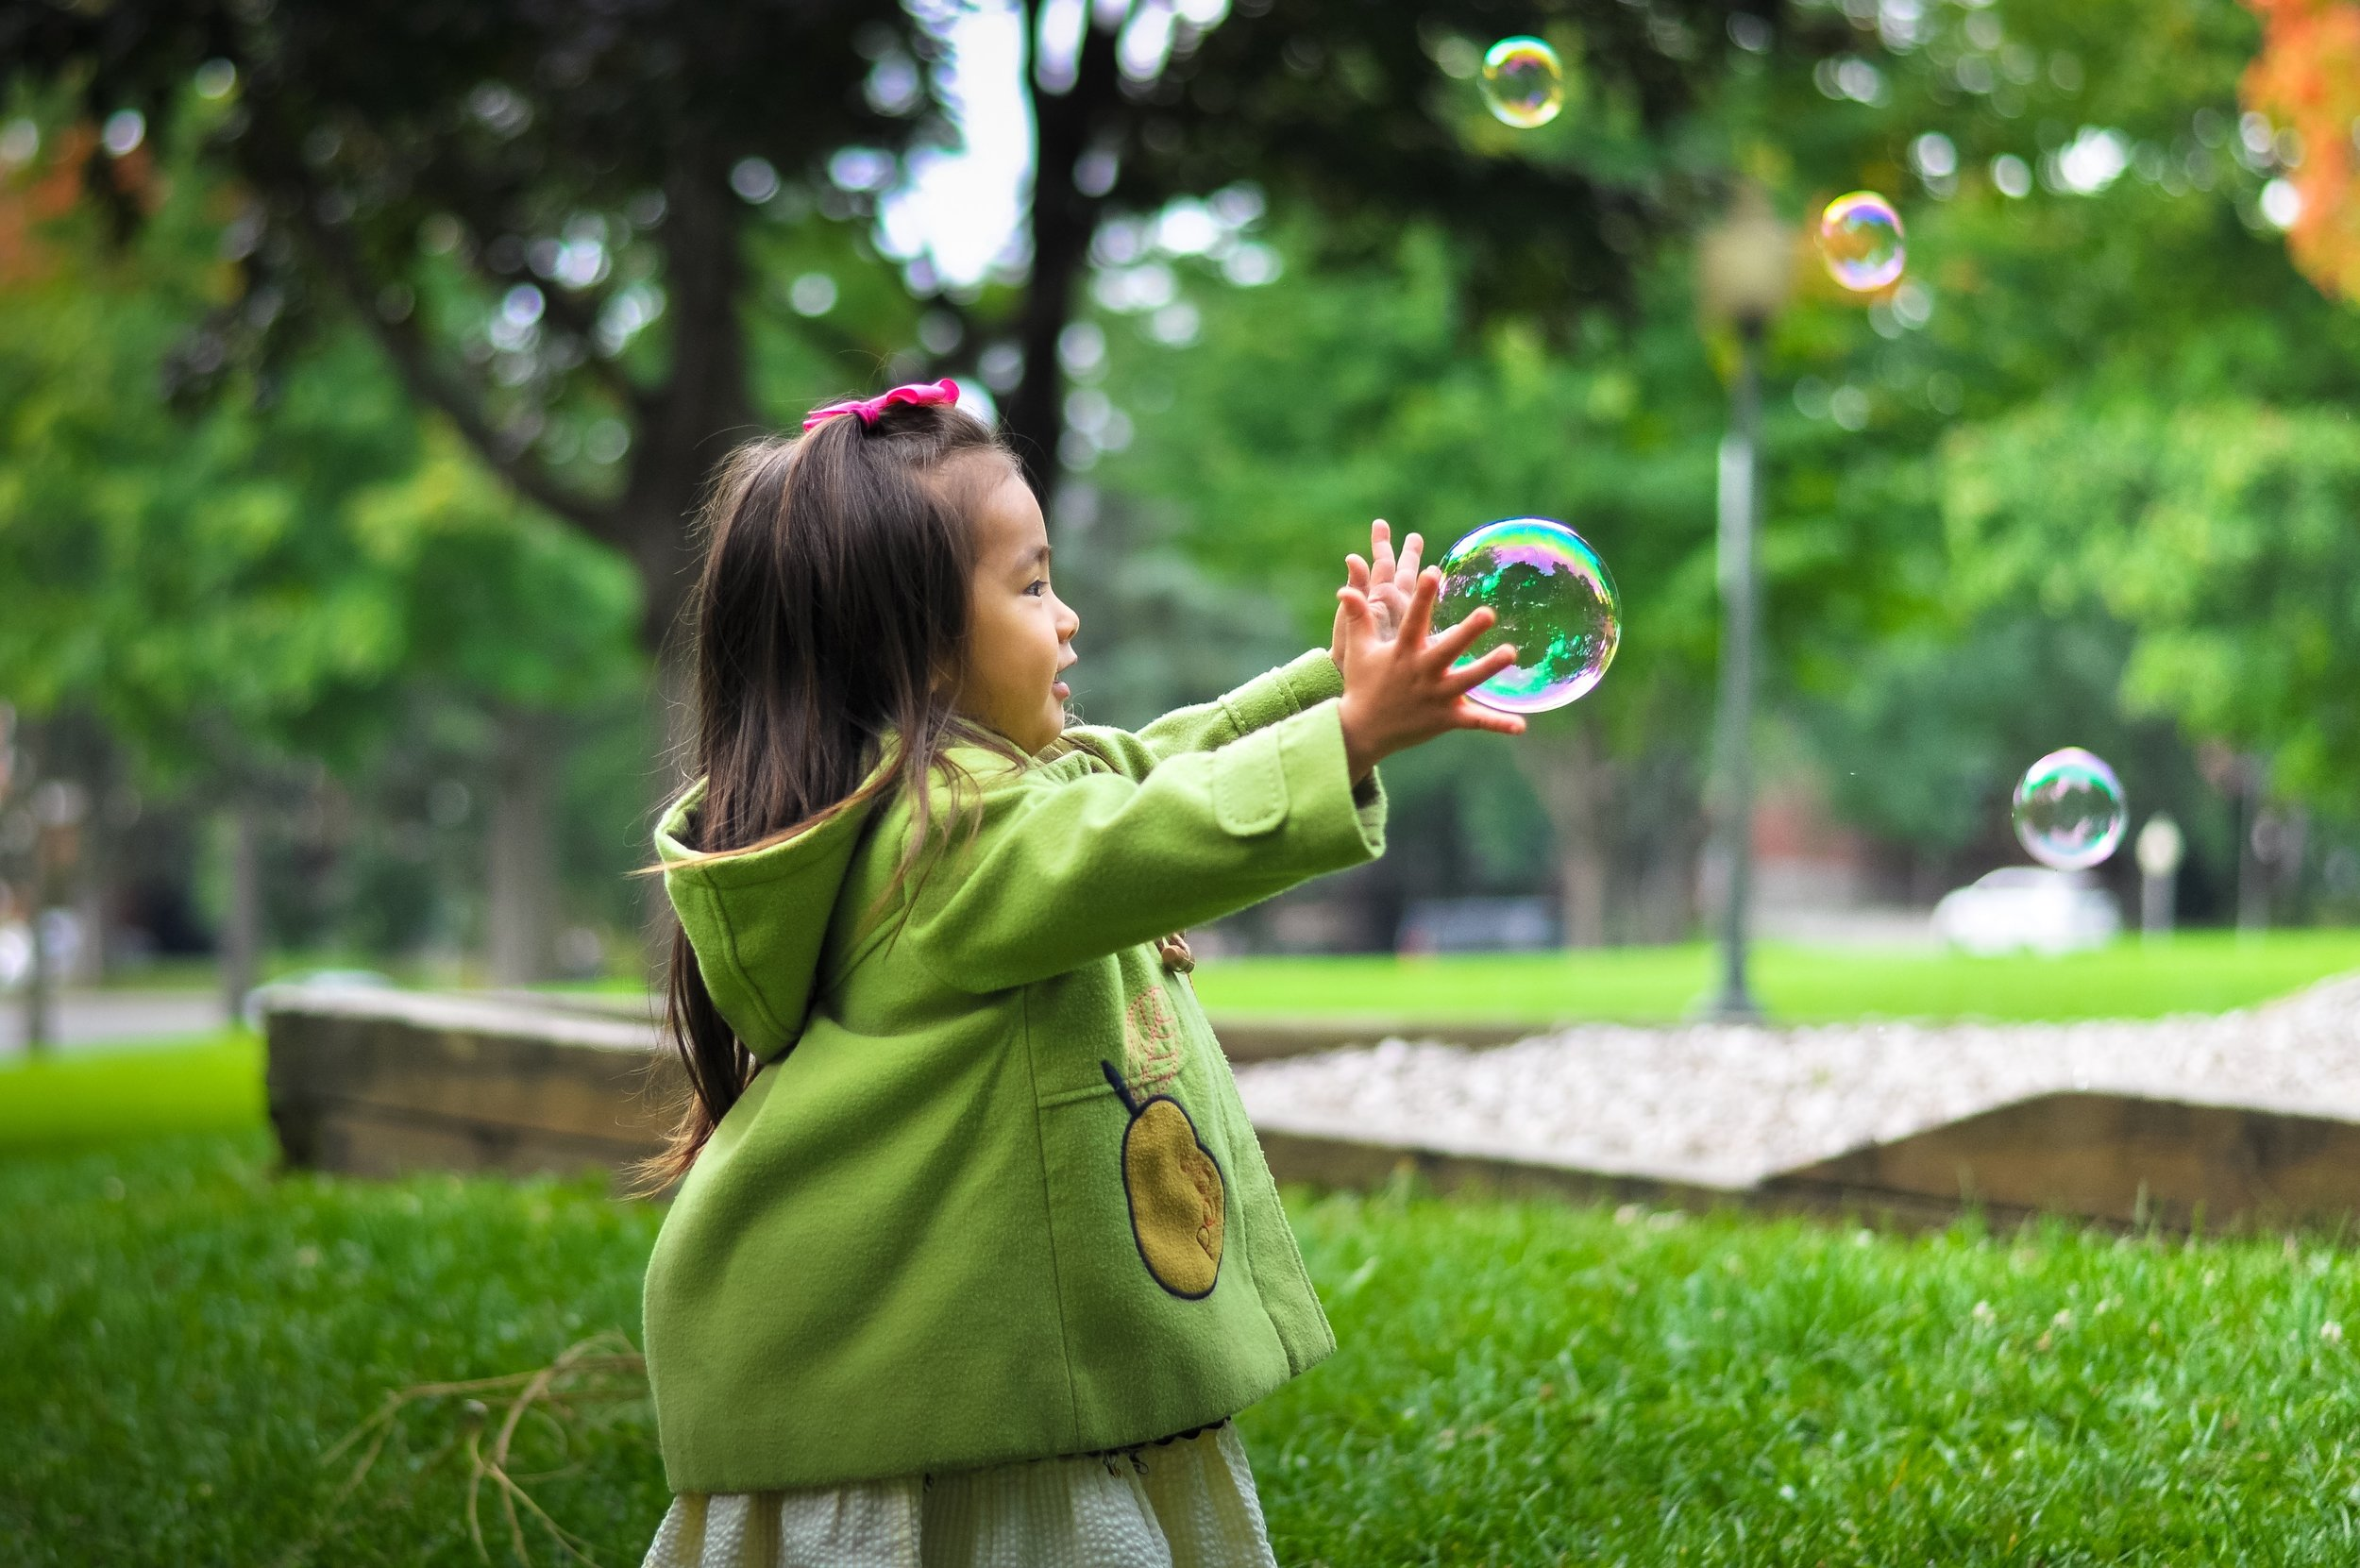 The future which we hold in trust for our own children will be shaped by our fairness to other people's children. - Marian Wright Edelman